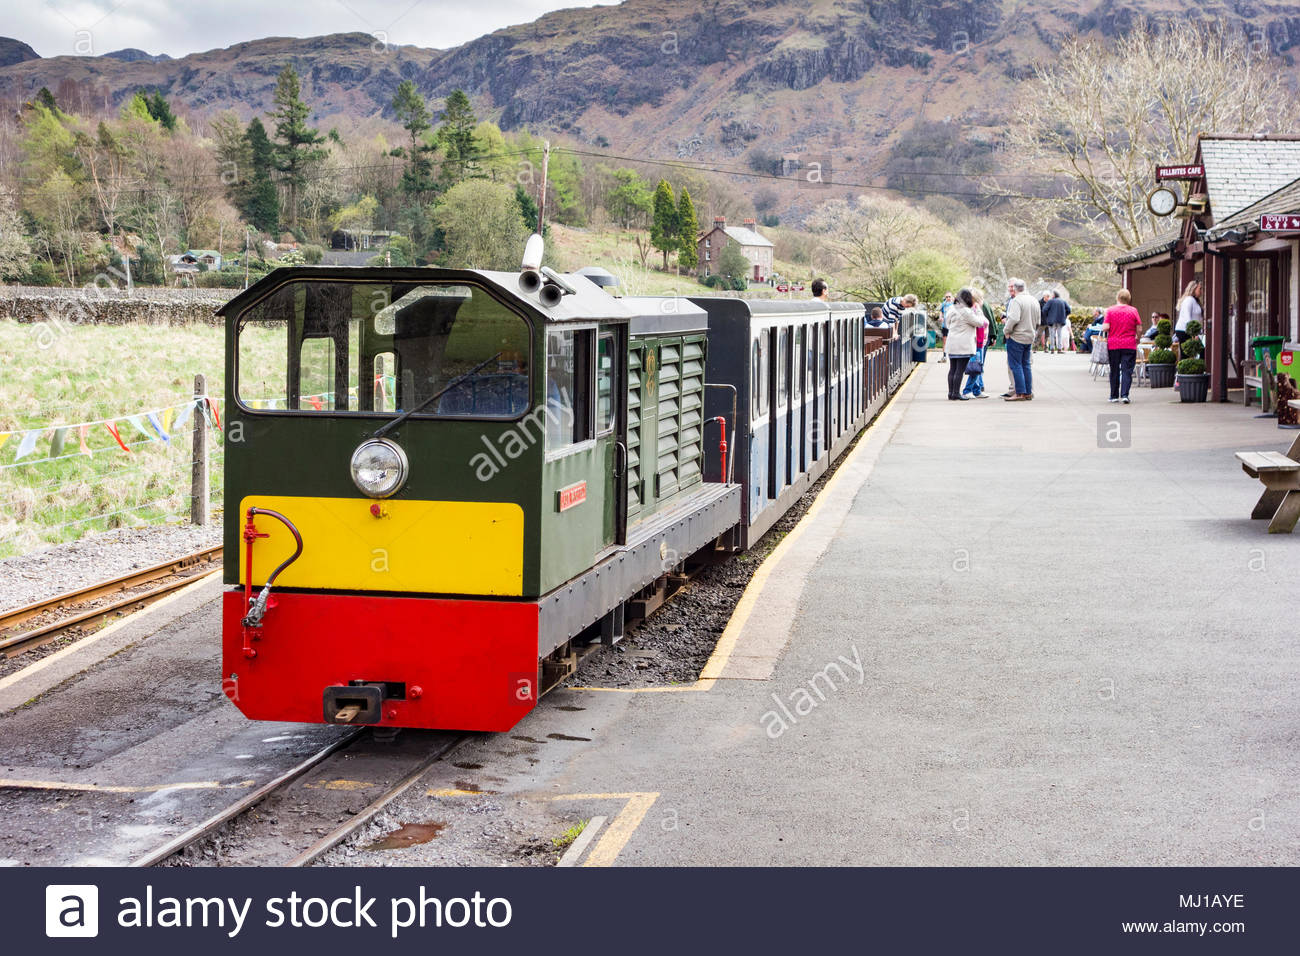 Lady Wakefield diesel locomotive ready to depart from Dalegarth Station on the Ravenglass and Eskdale narrow guage railway - Stock Image